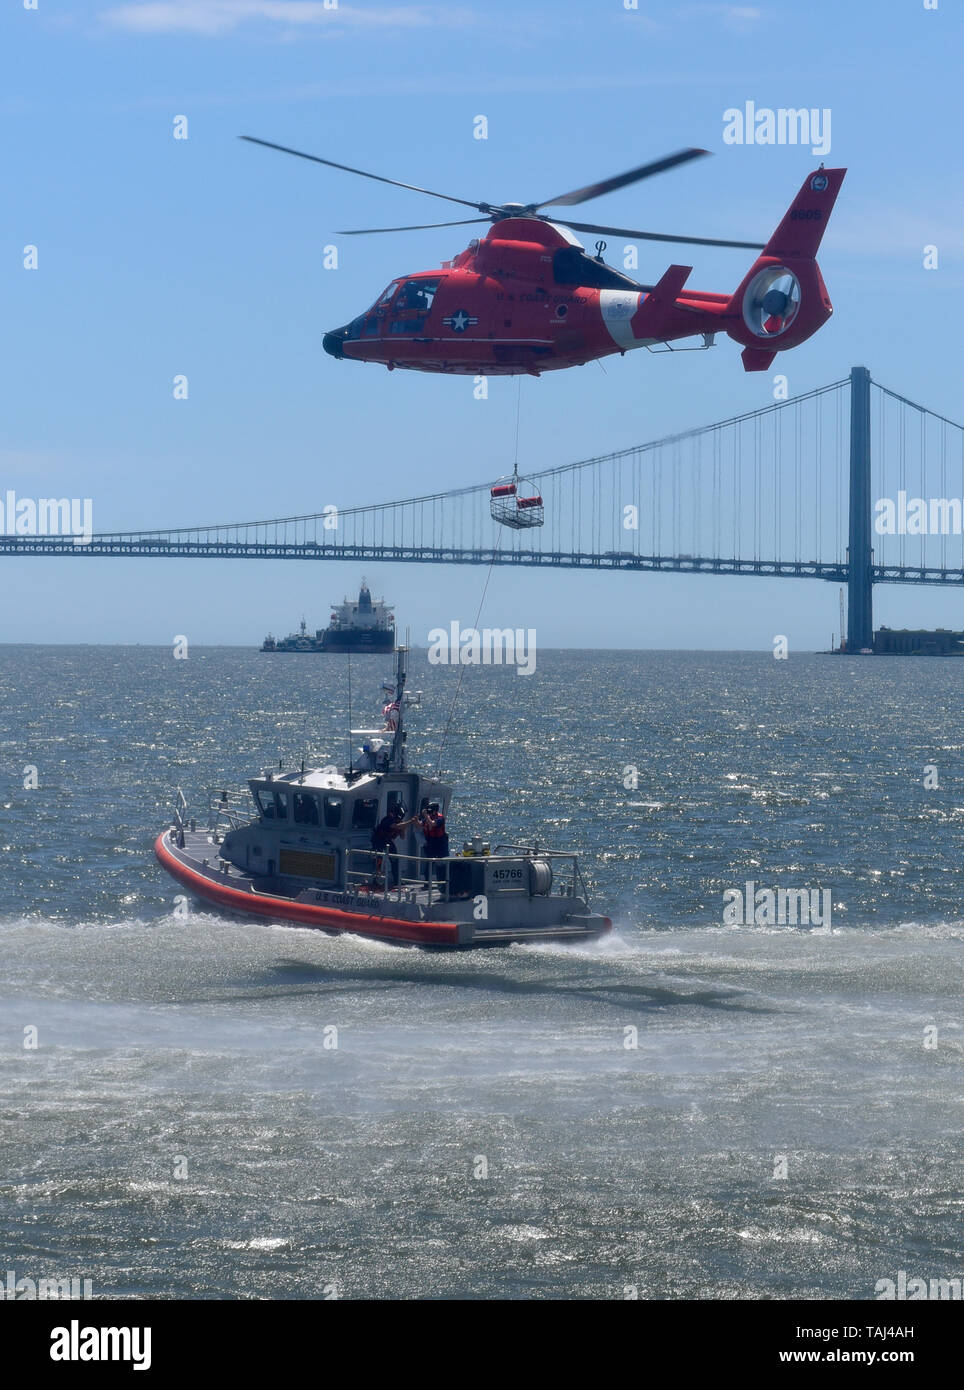 STATEN ISLAND, New York -- May 25, 2019 -- A U.S. Coast Guard HH-65 Dolphin helicopter crew from Atlantic City, New Jersey conducts a Search and Rescue airborne recovery demonstration during Fleet Week New York 2019 at Staten Island's USS The Sullivans Homeport Pier.   Fleet Week New York, now in its 31st year, is the city's time-honored celebration of the sea services. It is an unparalleled opportunity for the citizens of New York and the surrounding tri-state area to meet Sailors, Marines and Coast Guardsmen, as well as witness firsthand the latest capabilities of today's maritime services.  - Stock Image